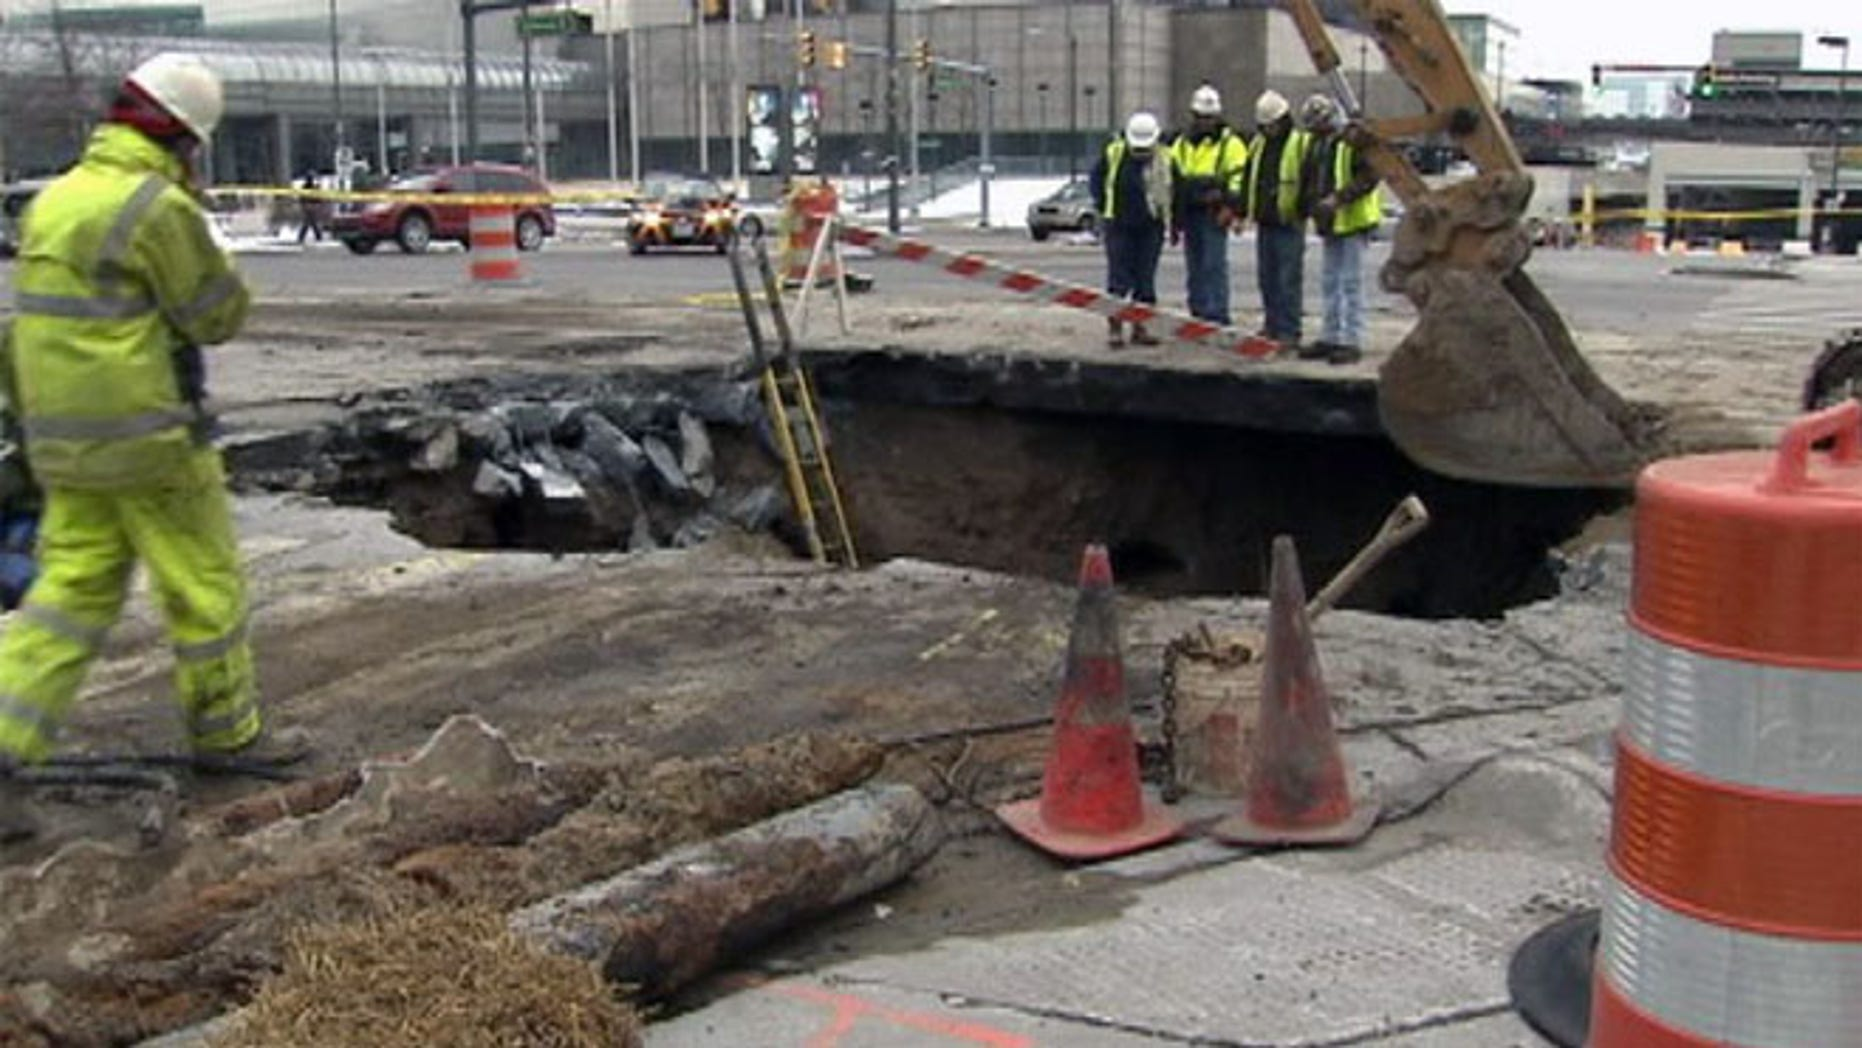 Crews are picture working on a sinkhole that has opened up in Detroit.